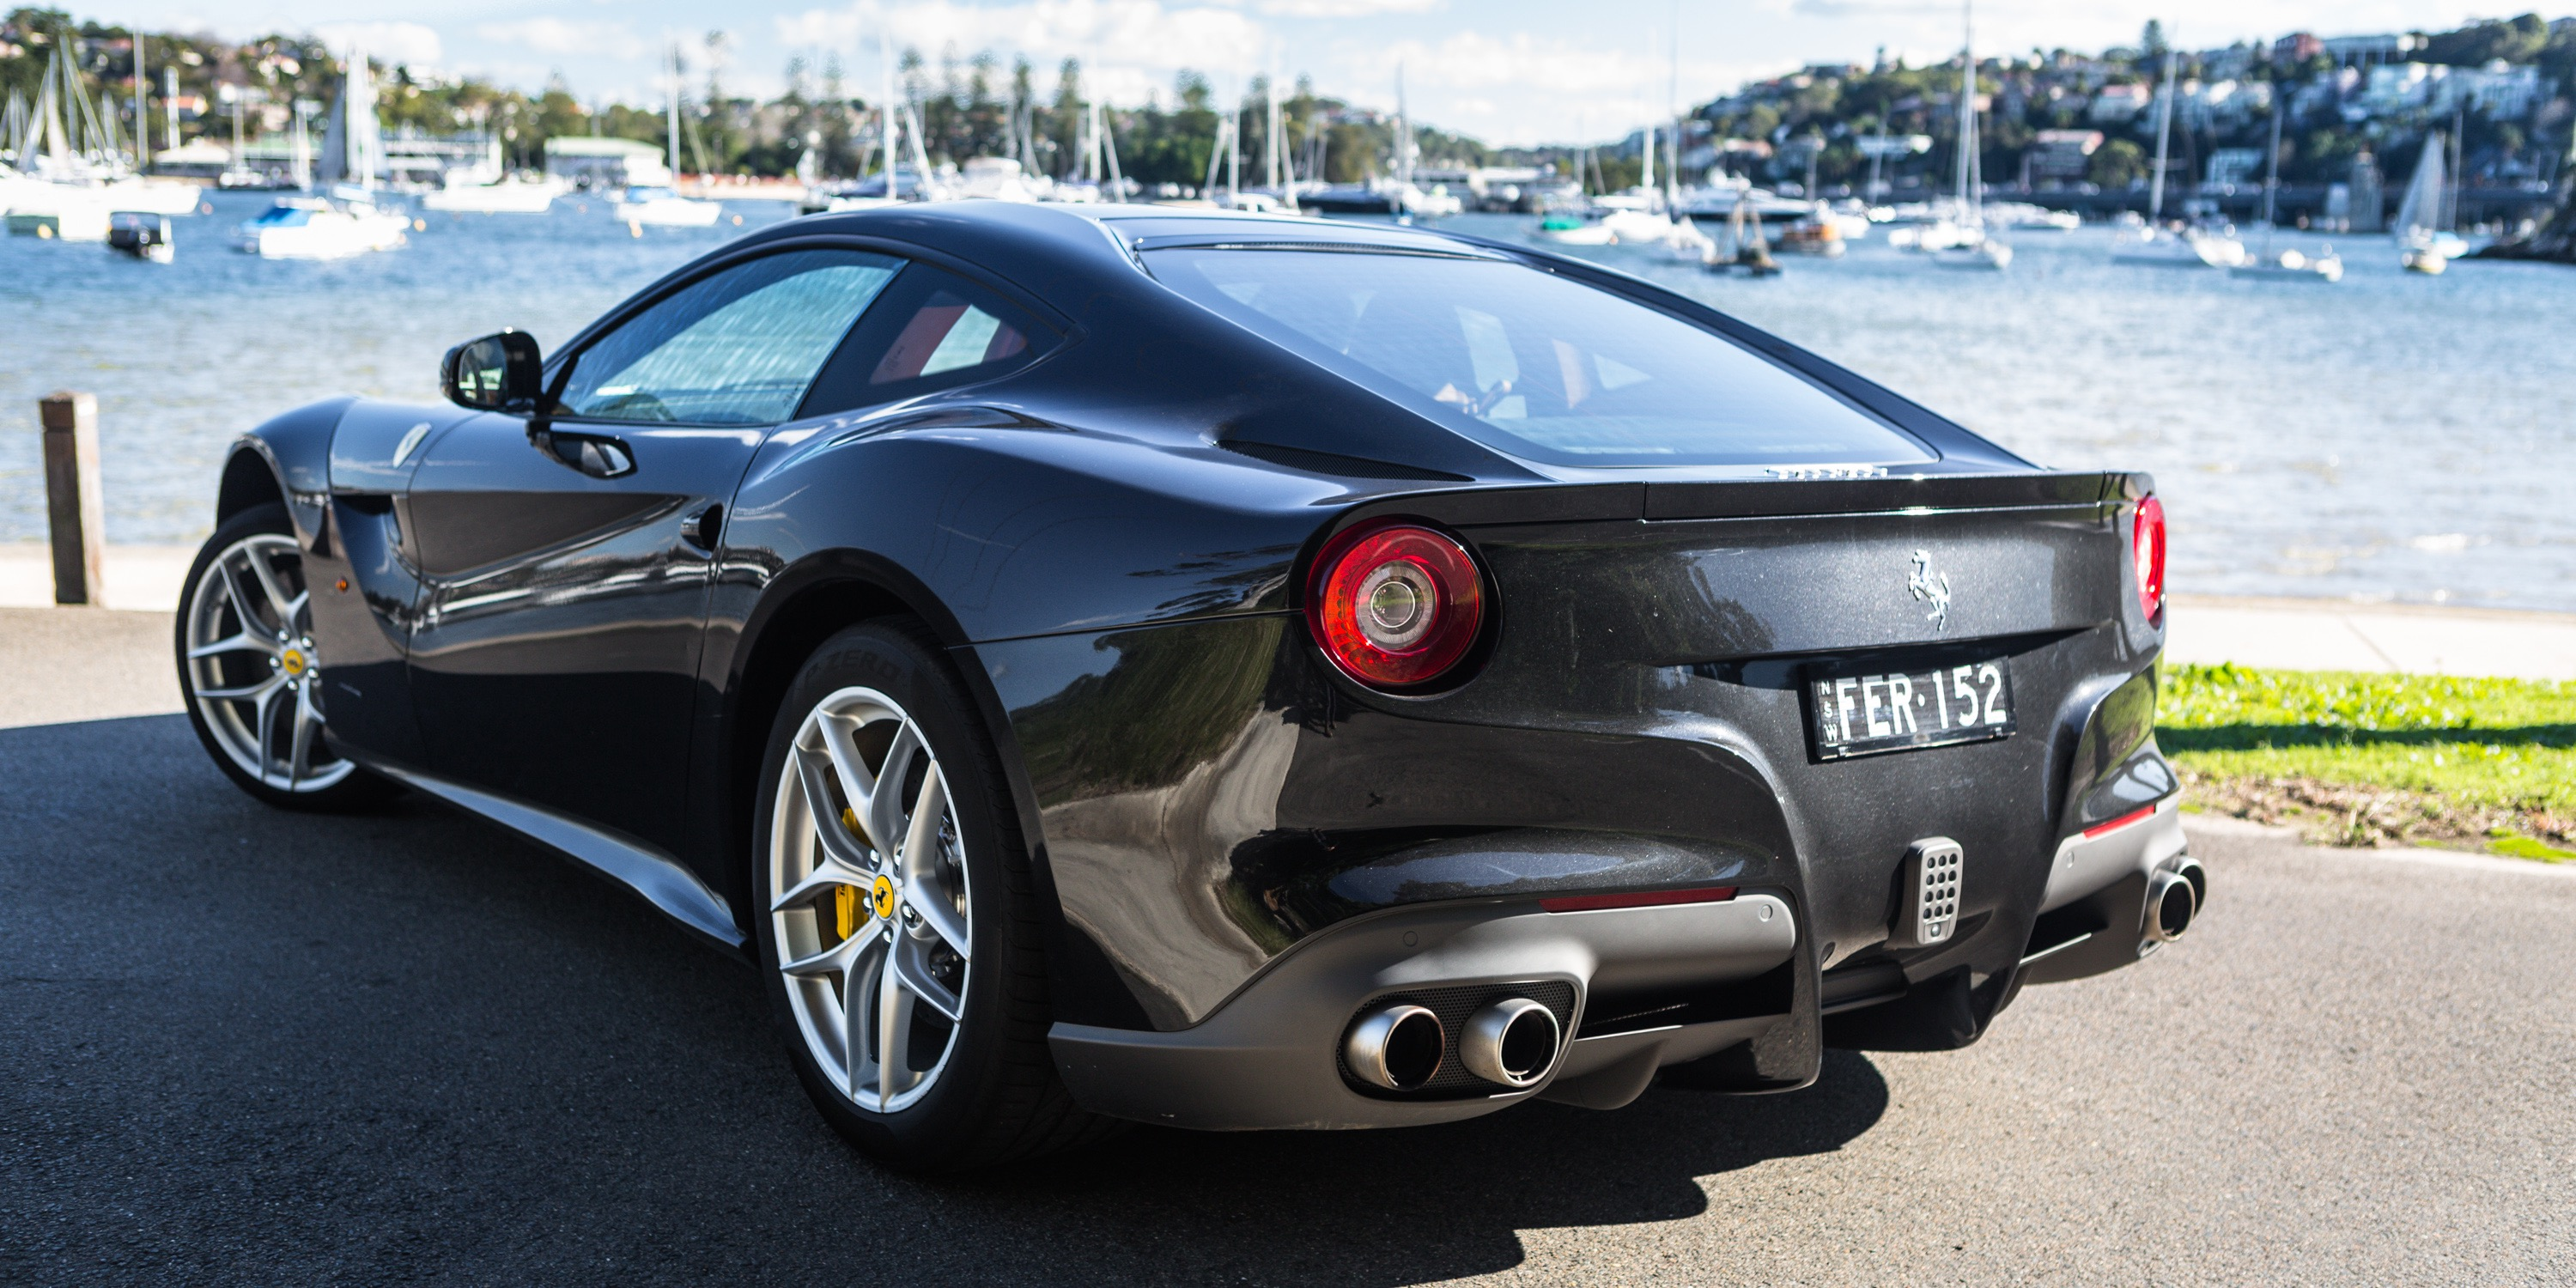 Ferrari F12 berlinetta photo 172113